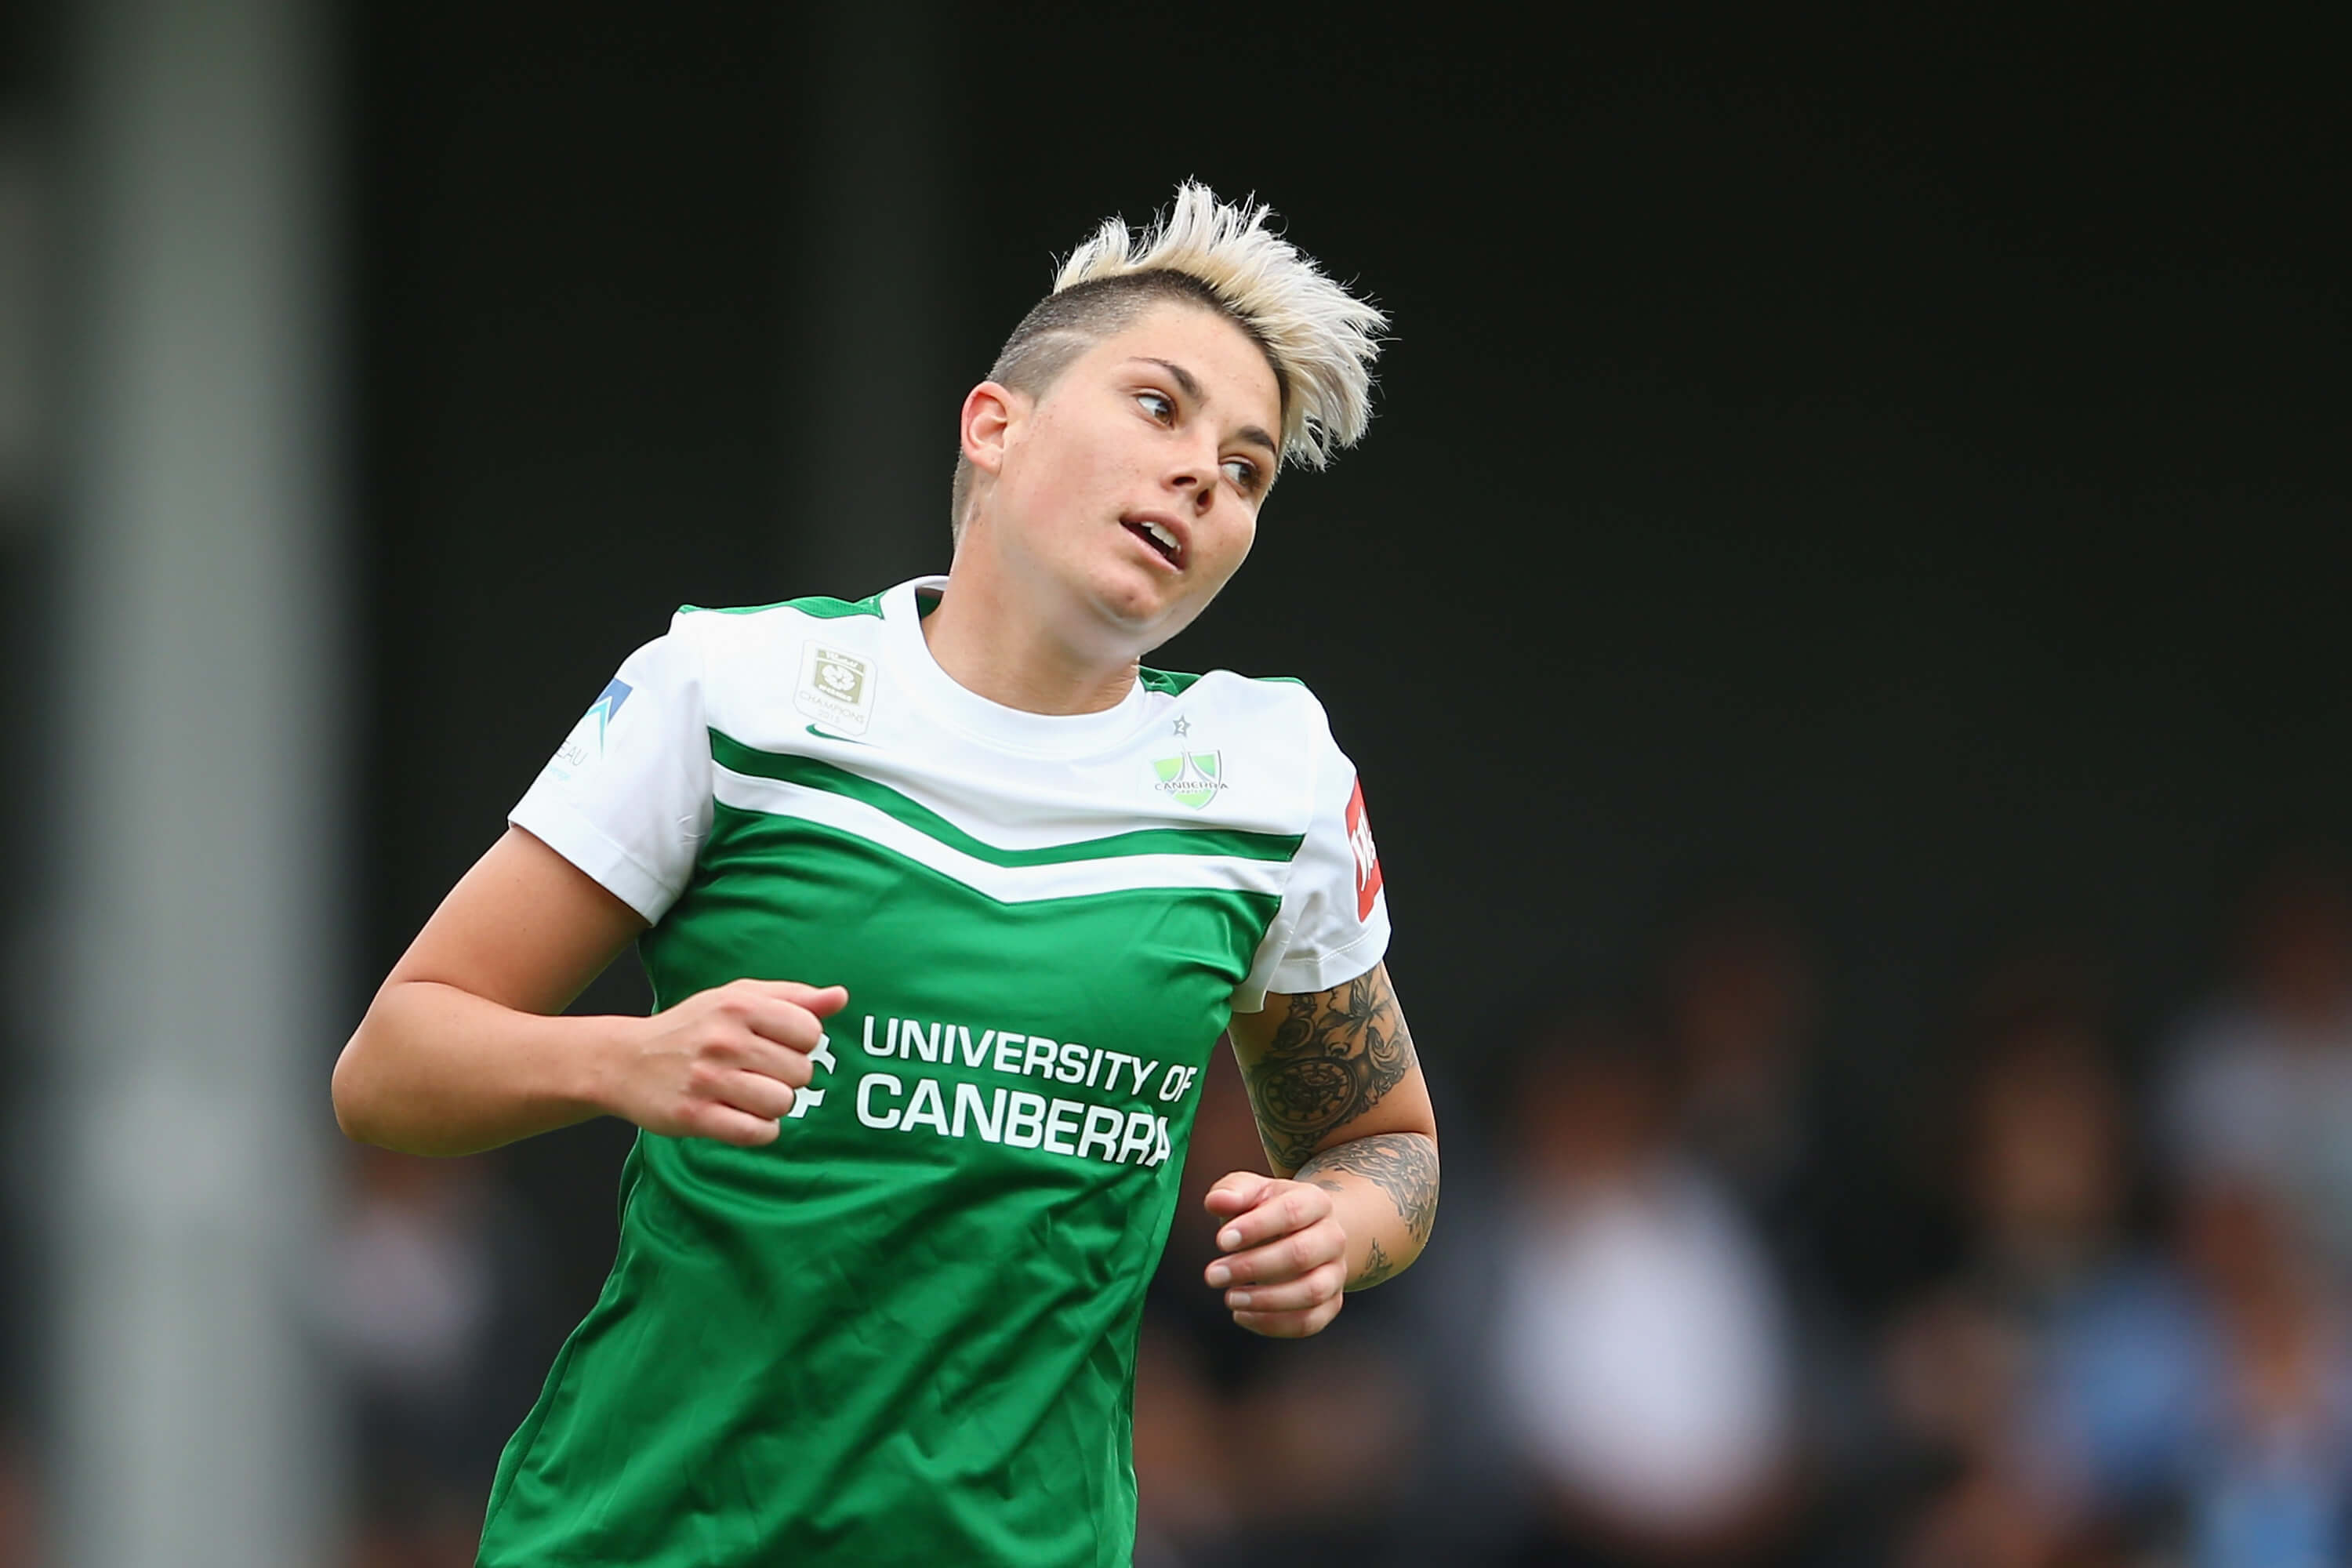 SYDNEY, AUSTRALIA - NOVEMBER 22: Michelle Heyman of United reacts after a missed chance on goal during the round six W-League match between Sydney FC and Canberra United at Lambert Park on November 22, 2015 in Sydney, Australia. (Photo by Mark Kolbe/Getty Images)